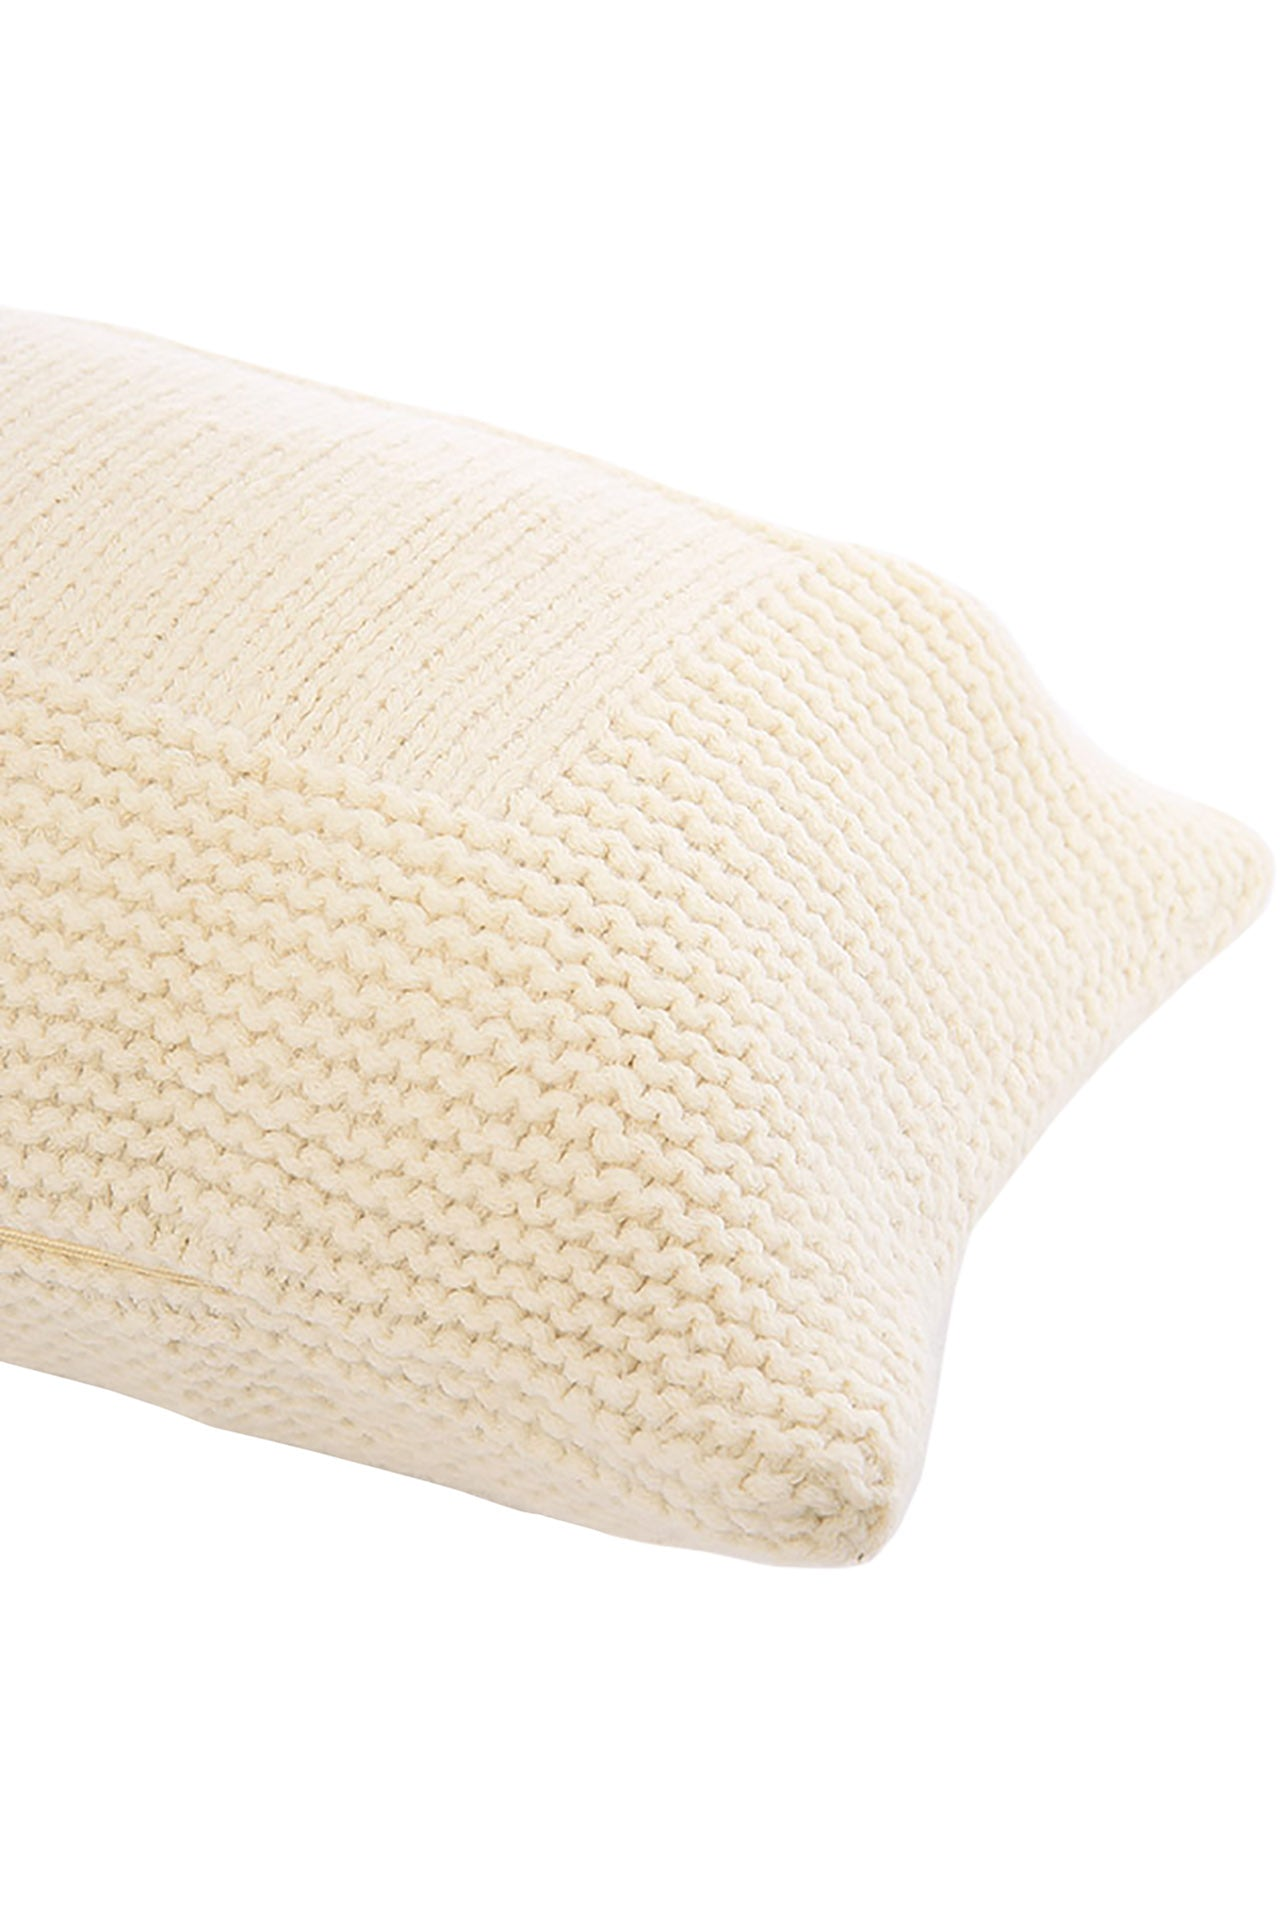 Abrazo Hand Knit Alpaca Pillow Cover